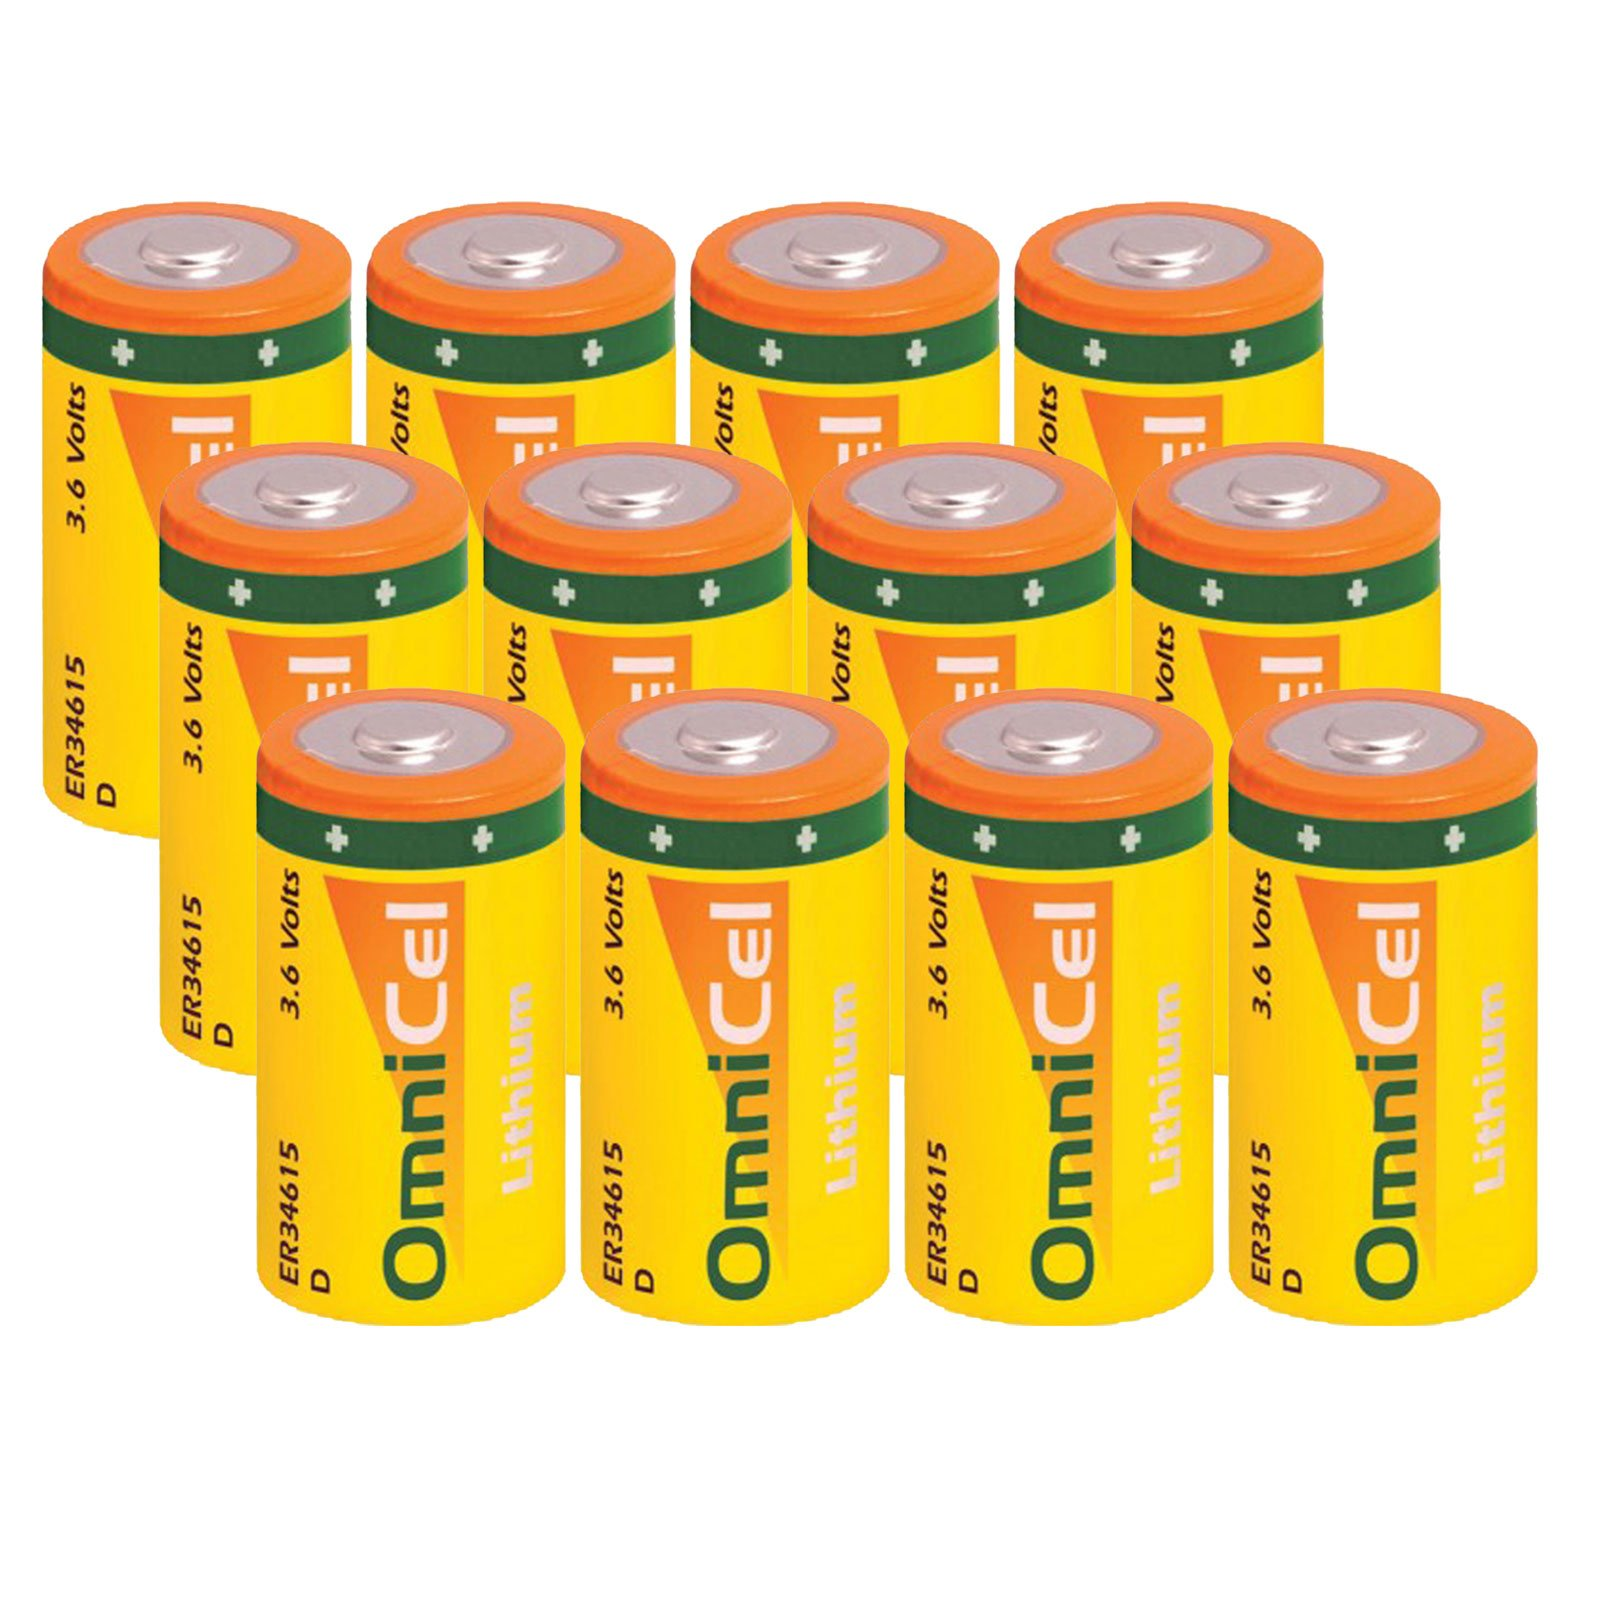 12x OmniCel ER34615 3.6 Volt 19Ah Size D Lithium Button Top Battery For RFID Tracking, Asset Tracking, Theft Prevention, Locator Beacons, AMR Add-ons, Smoke Alarms, Carbon Monoxide Detectors by Exell Battery